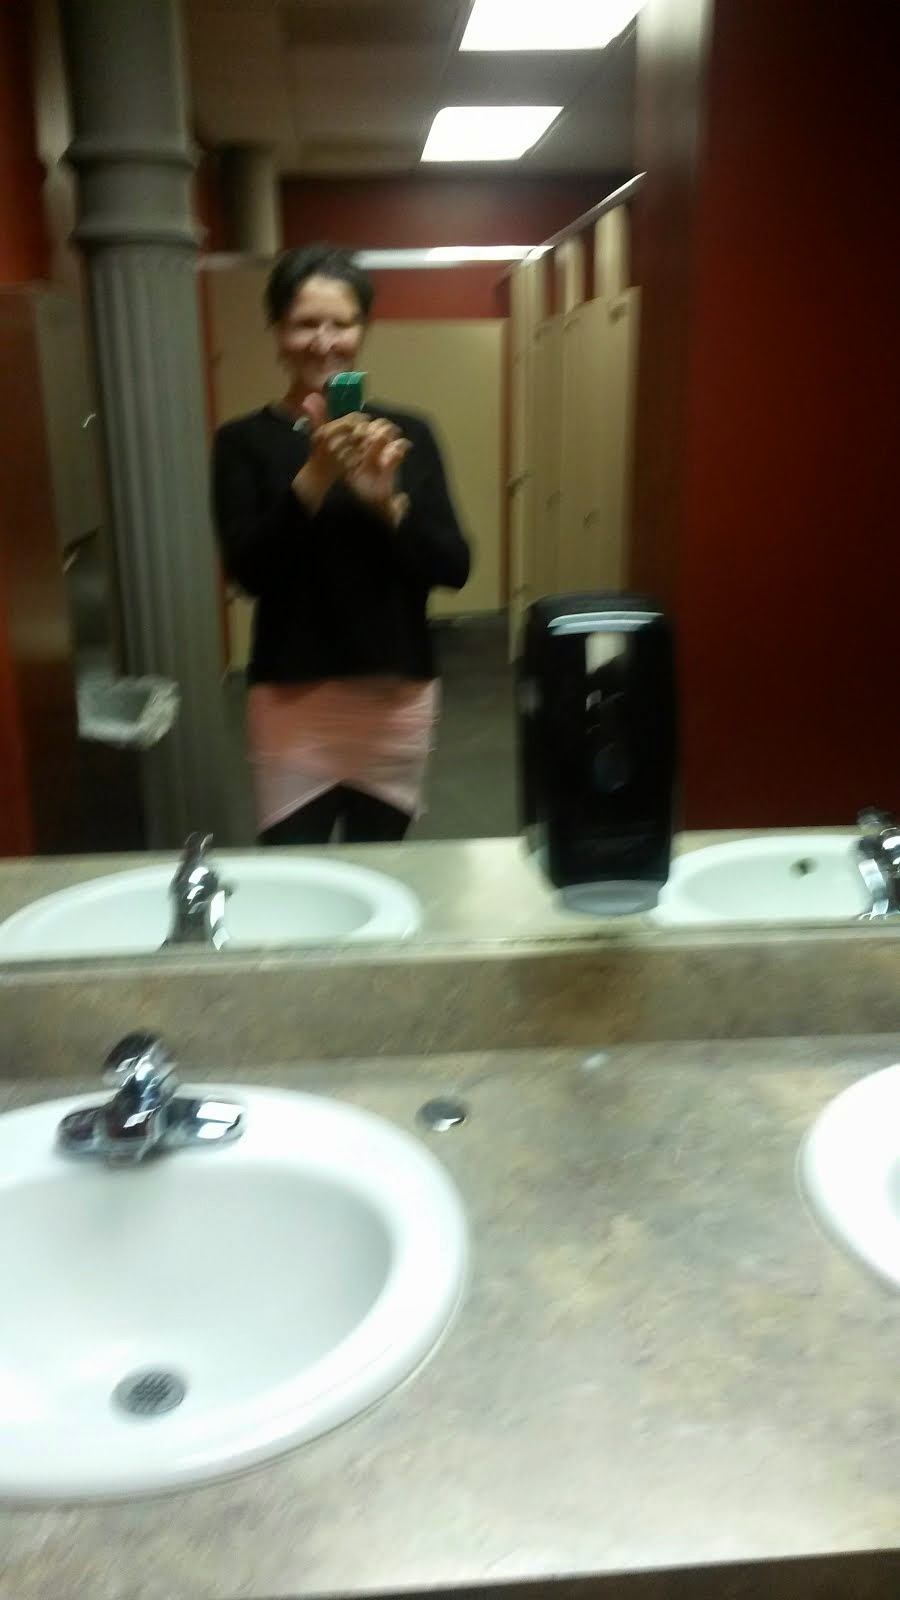 In The Restroom in the RME